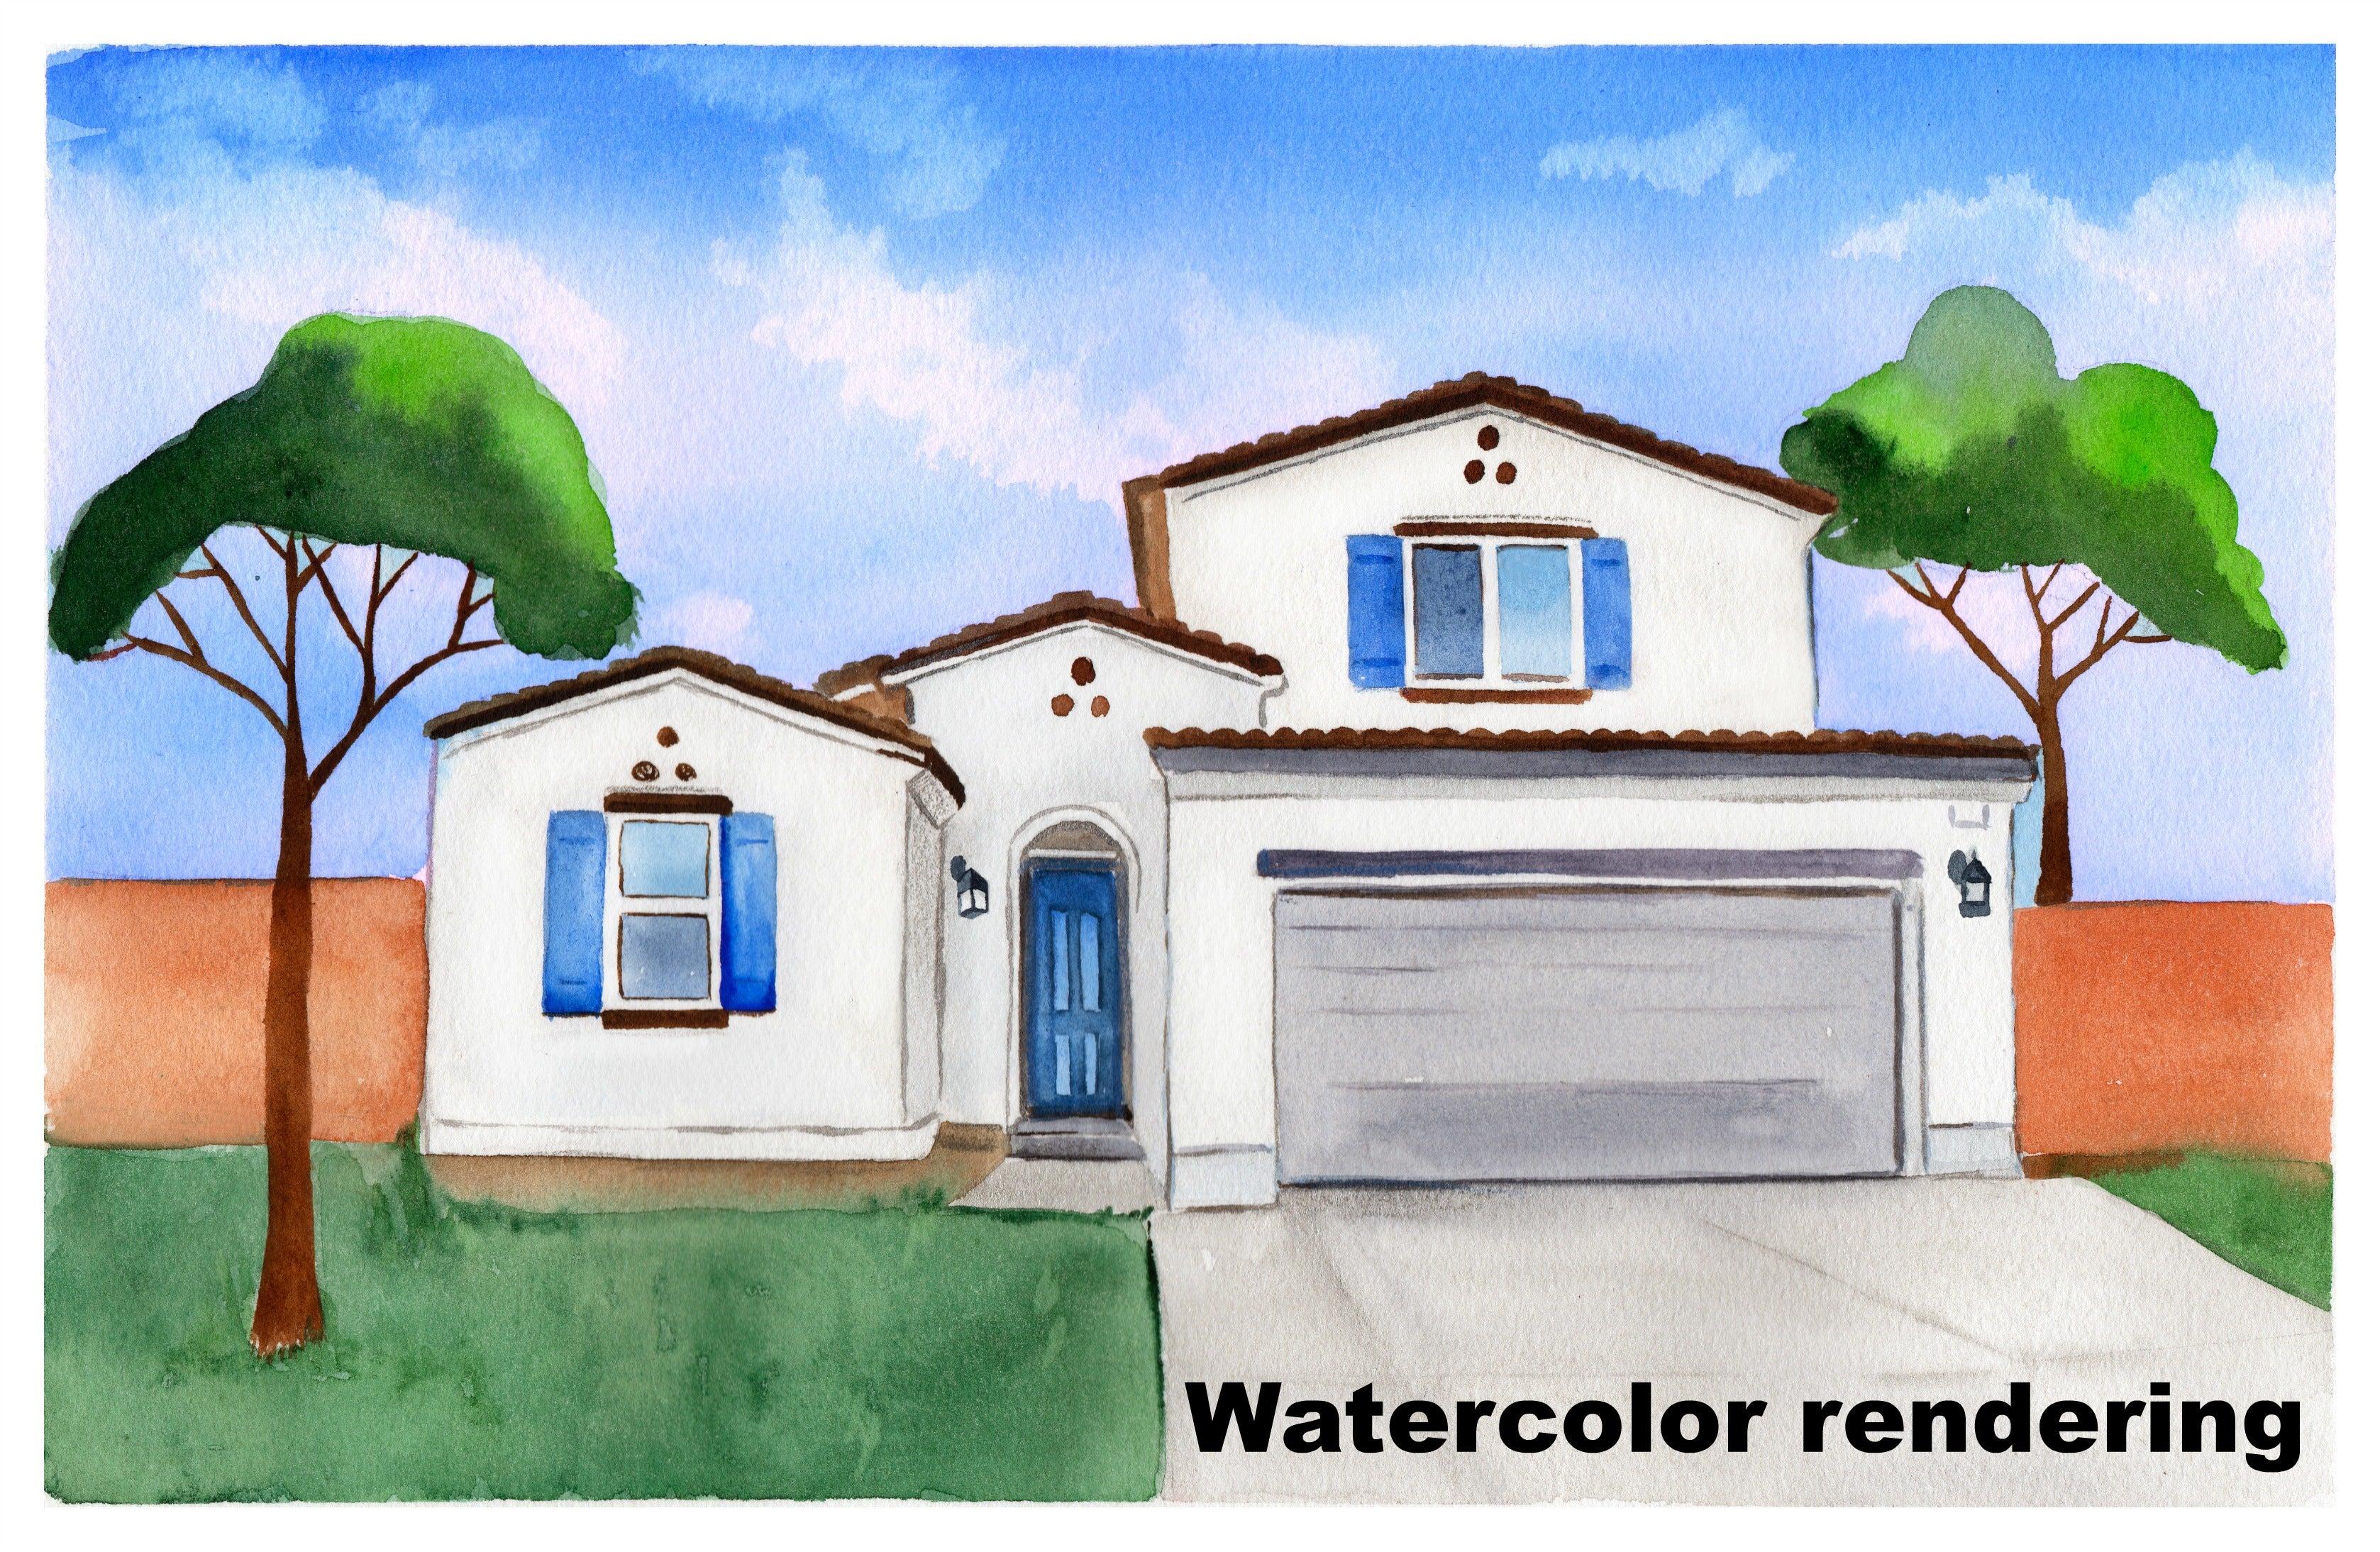 HOUSEWARMING GIFT OF WATERCOLOR RENDERING OF NEW HOME